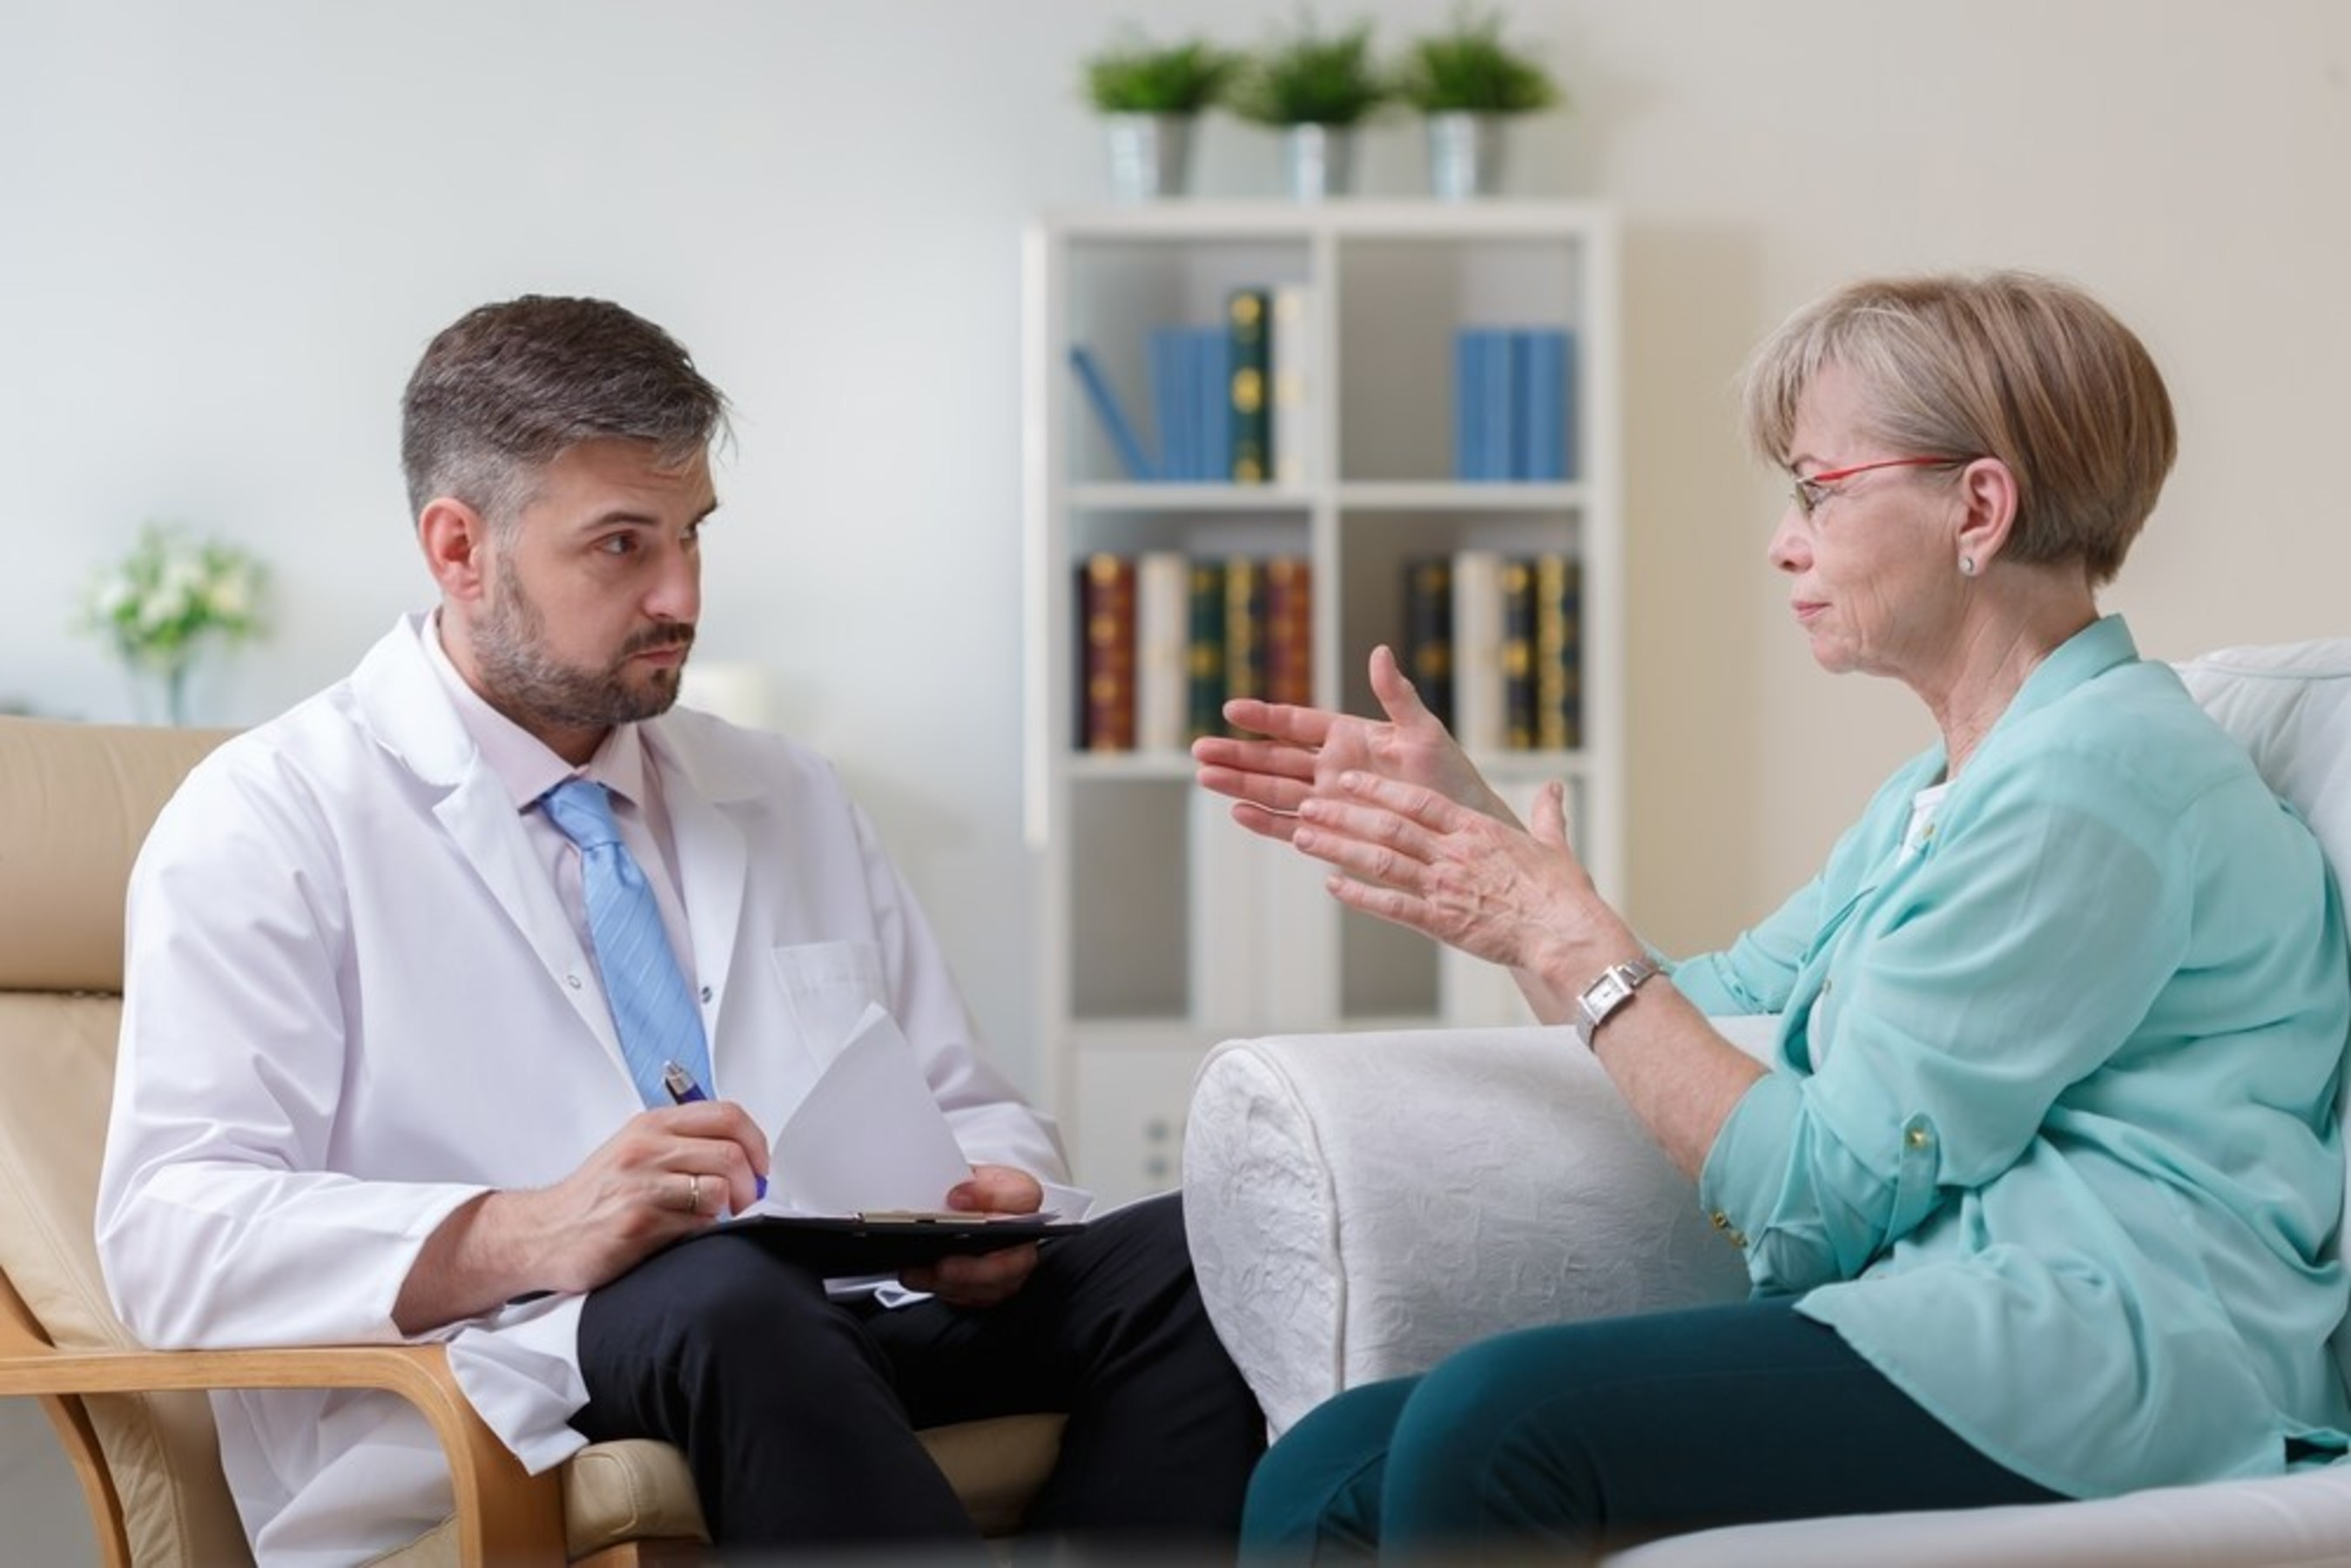 Psychiatrist was the second highest paying job but it requires years of post-undergraduate training.